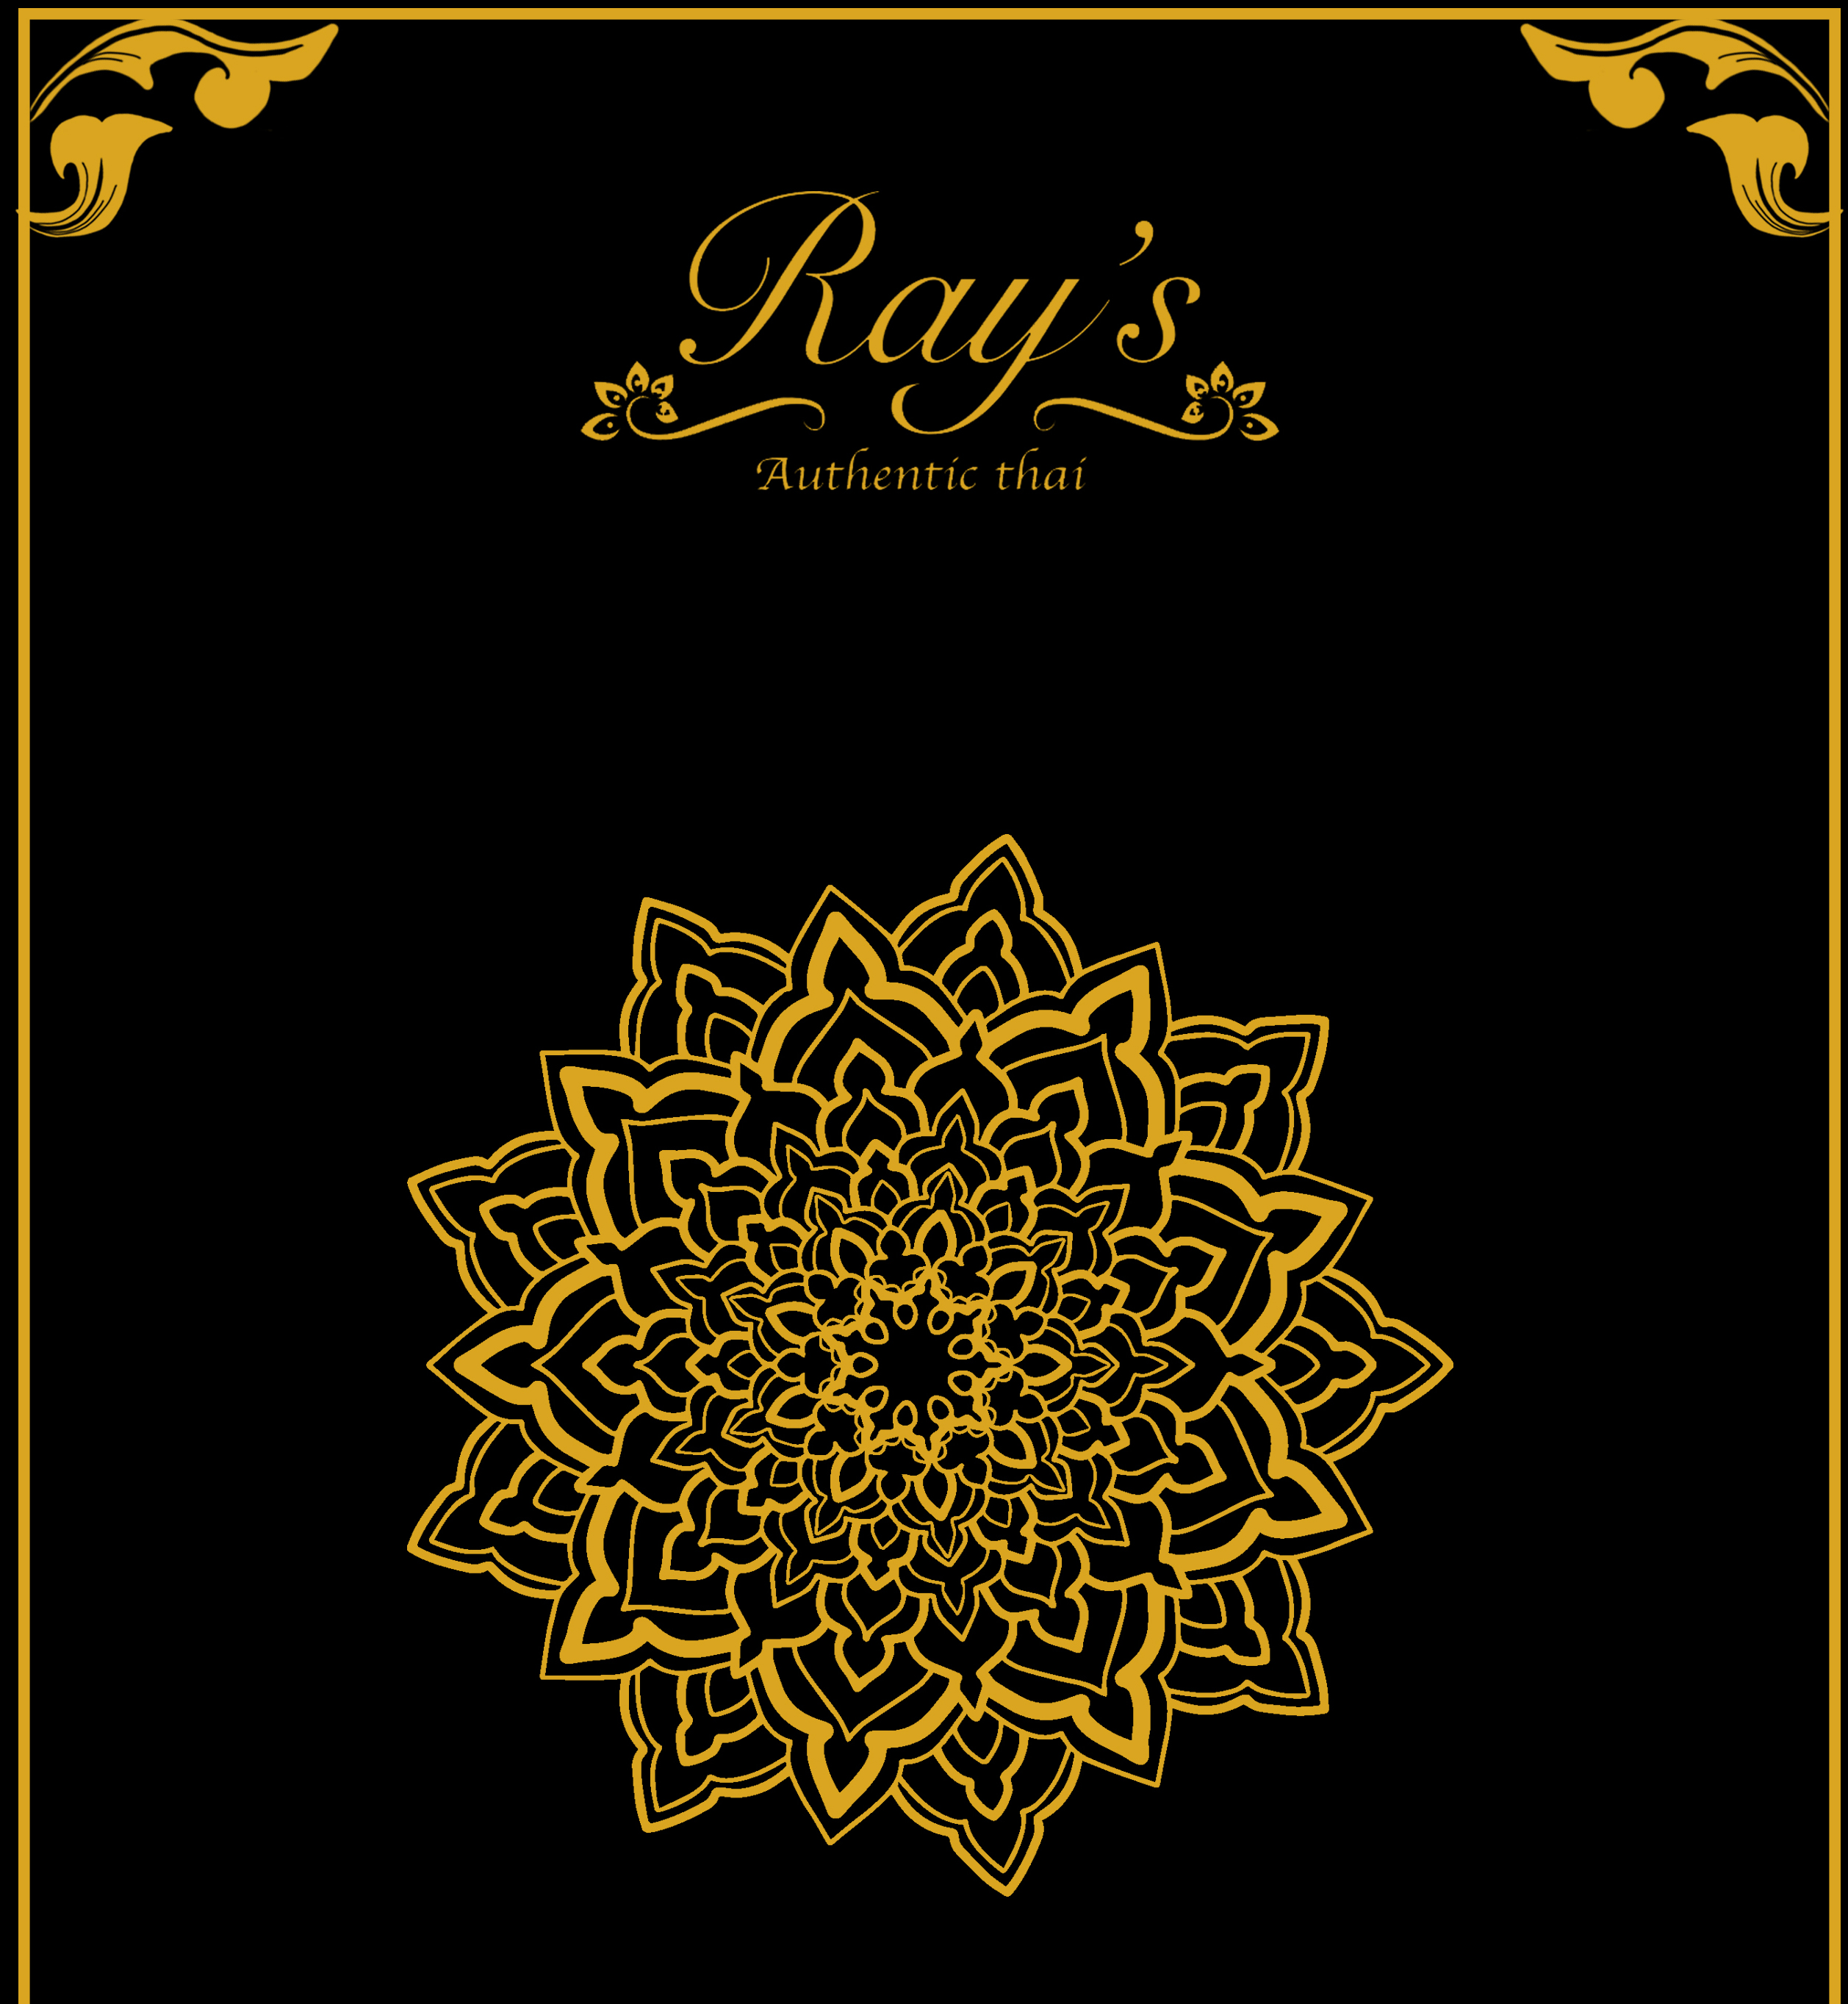 Ray's Authentic Thai Menu